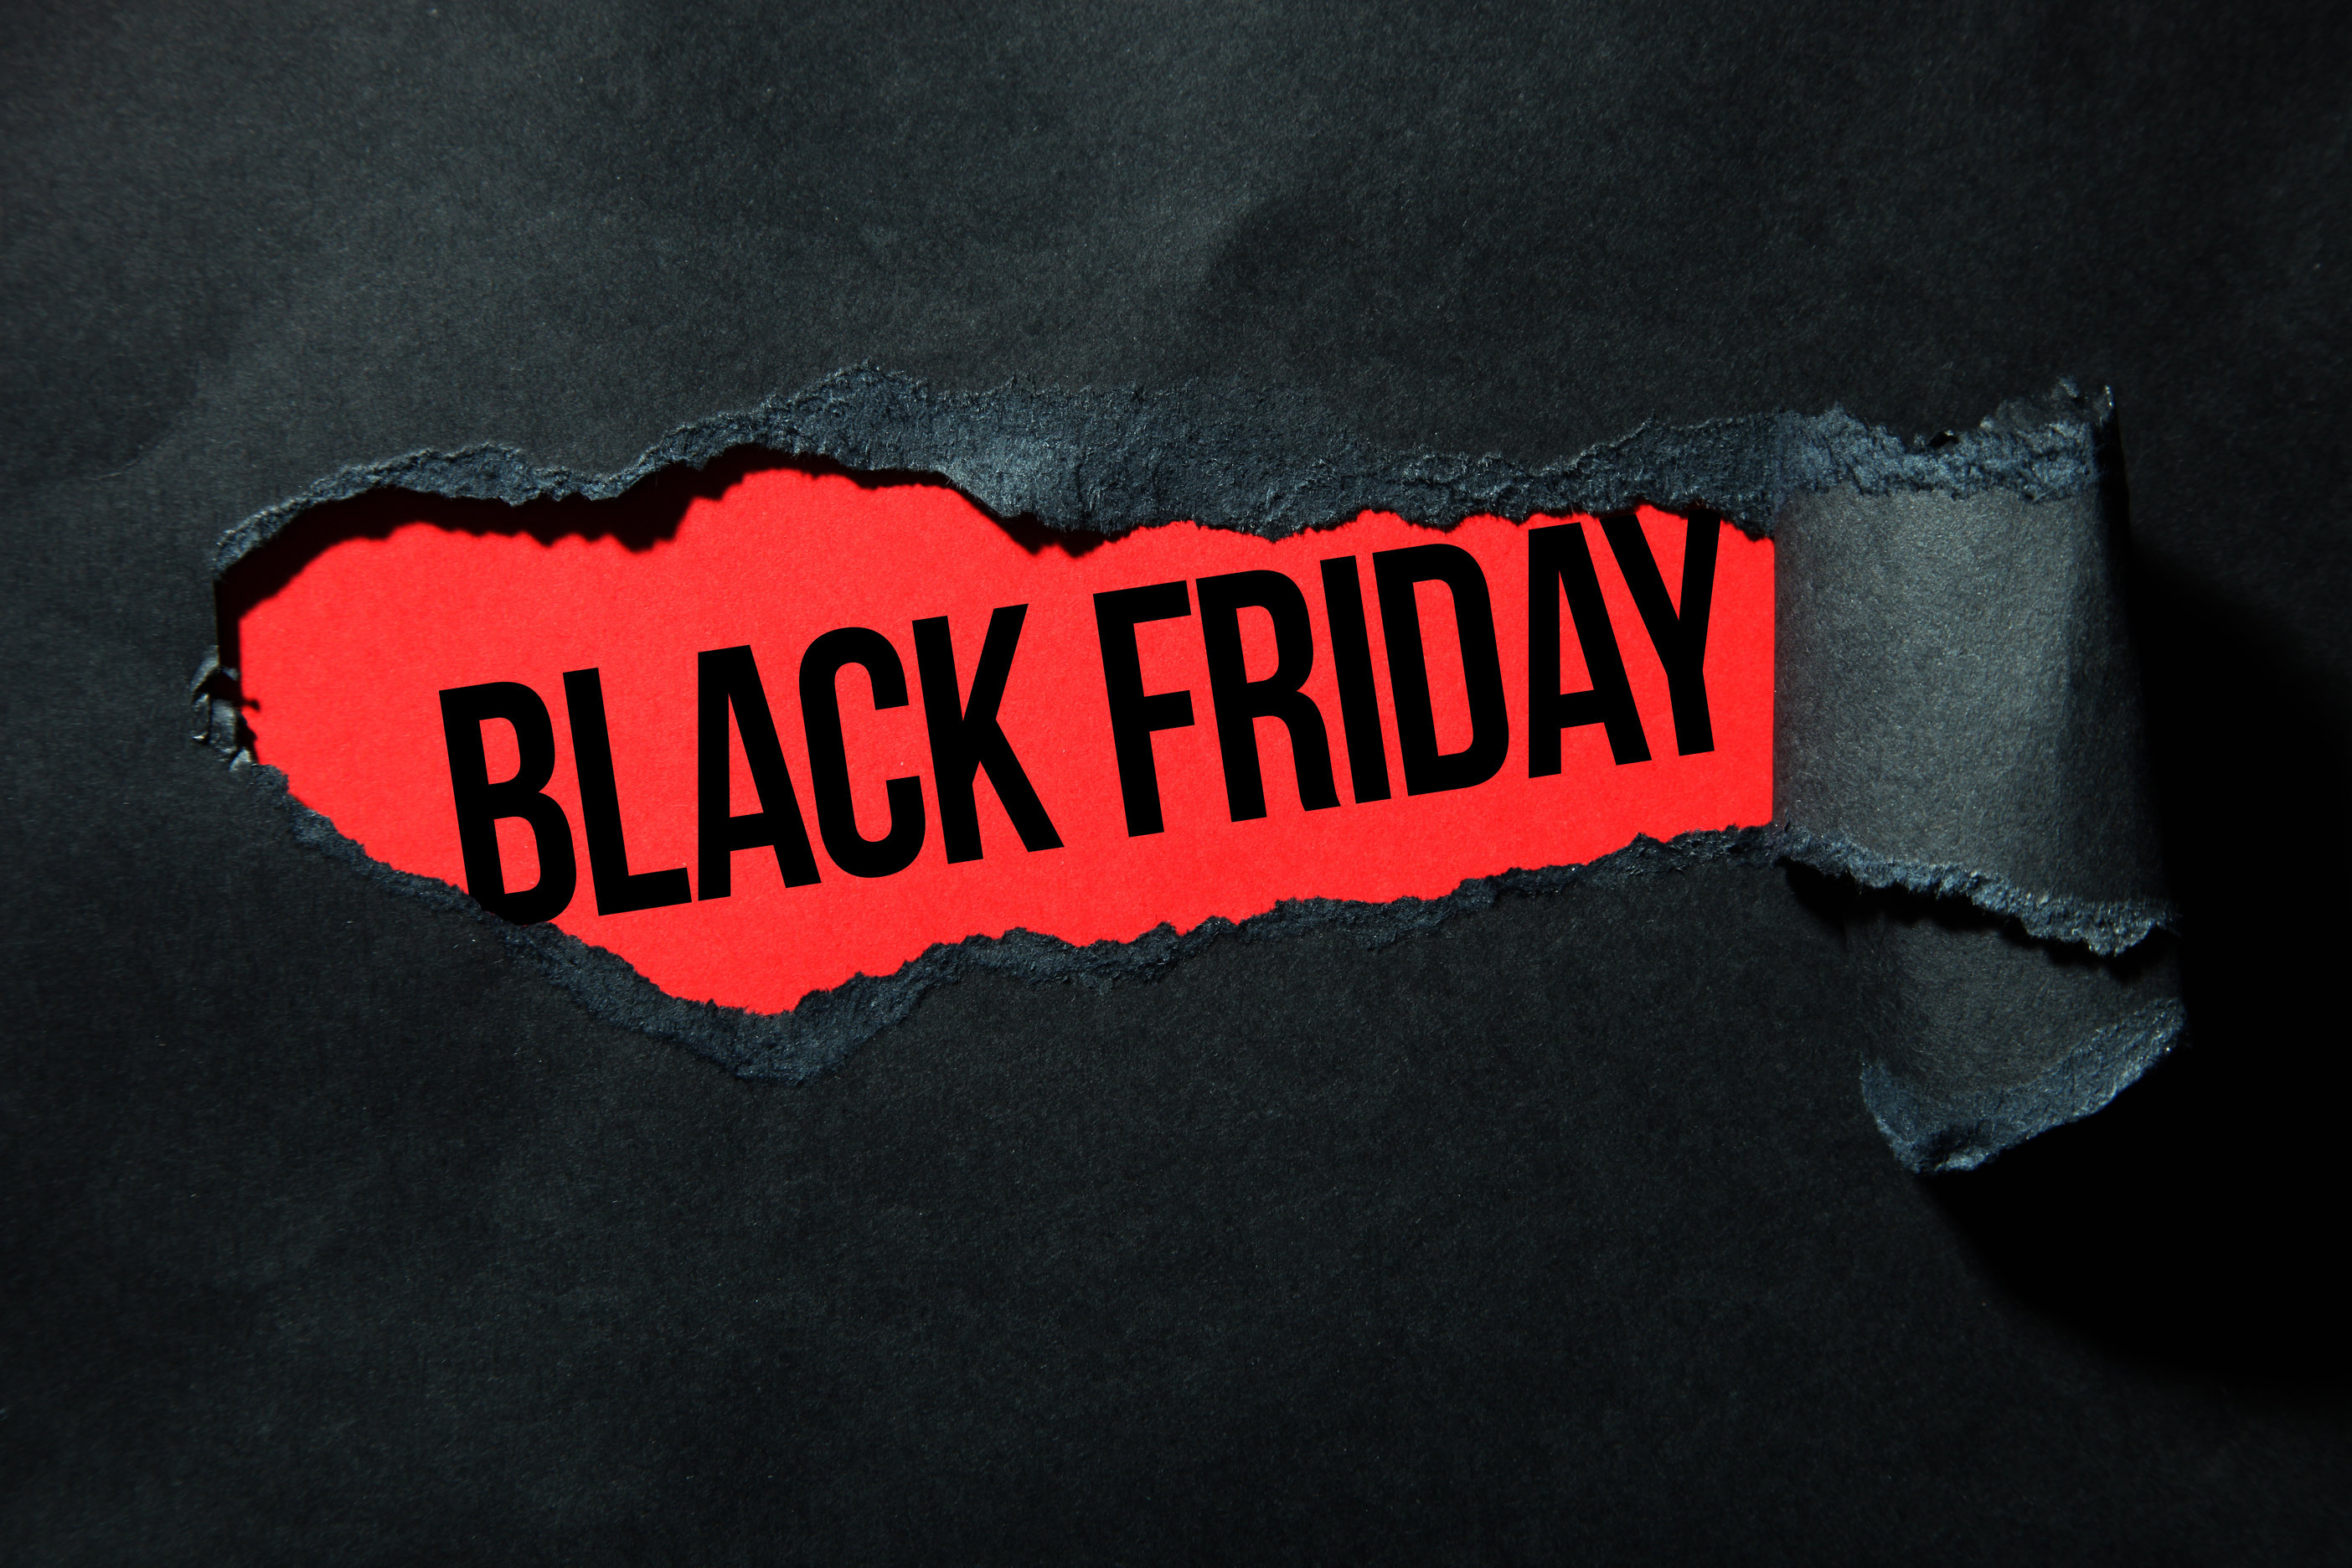 Black friday, shopping, online